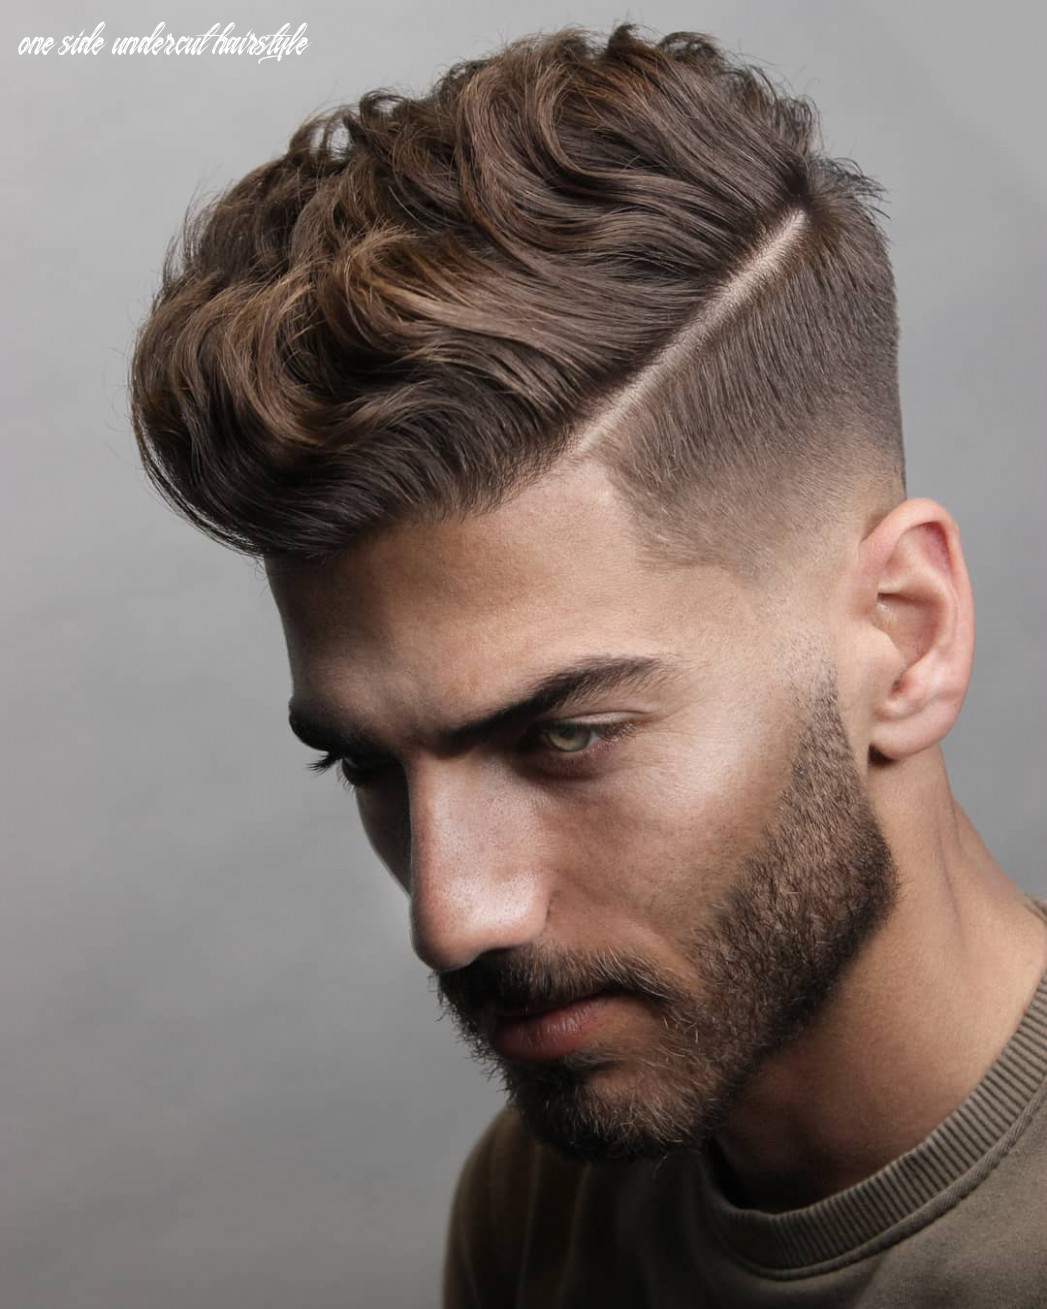 11 short on sides long on top haircuts for men | man haircuts one side undercut hairstyle